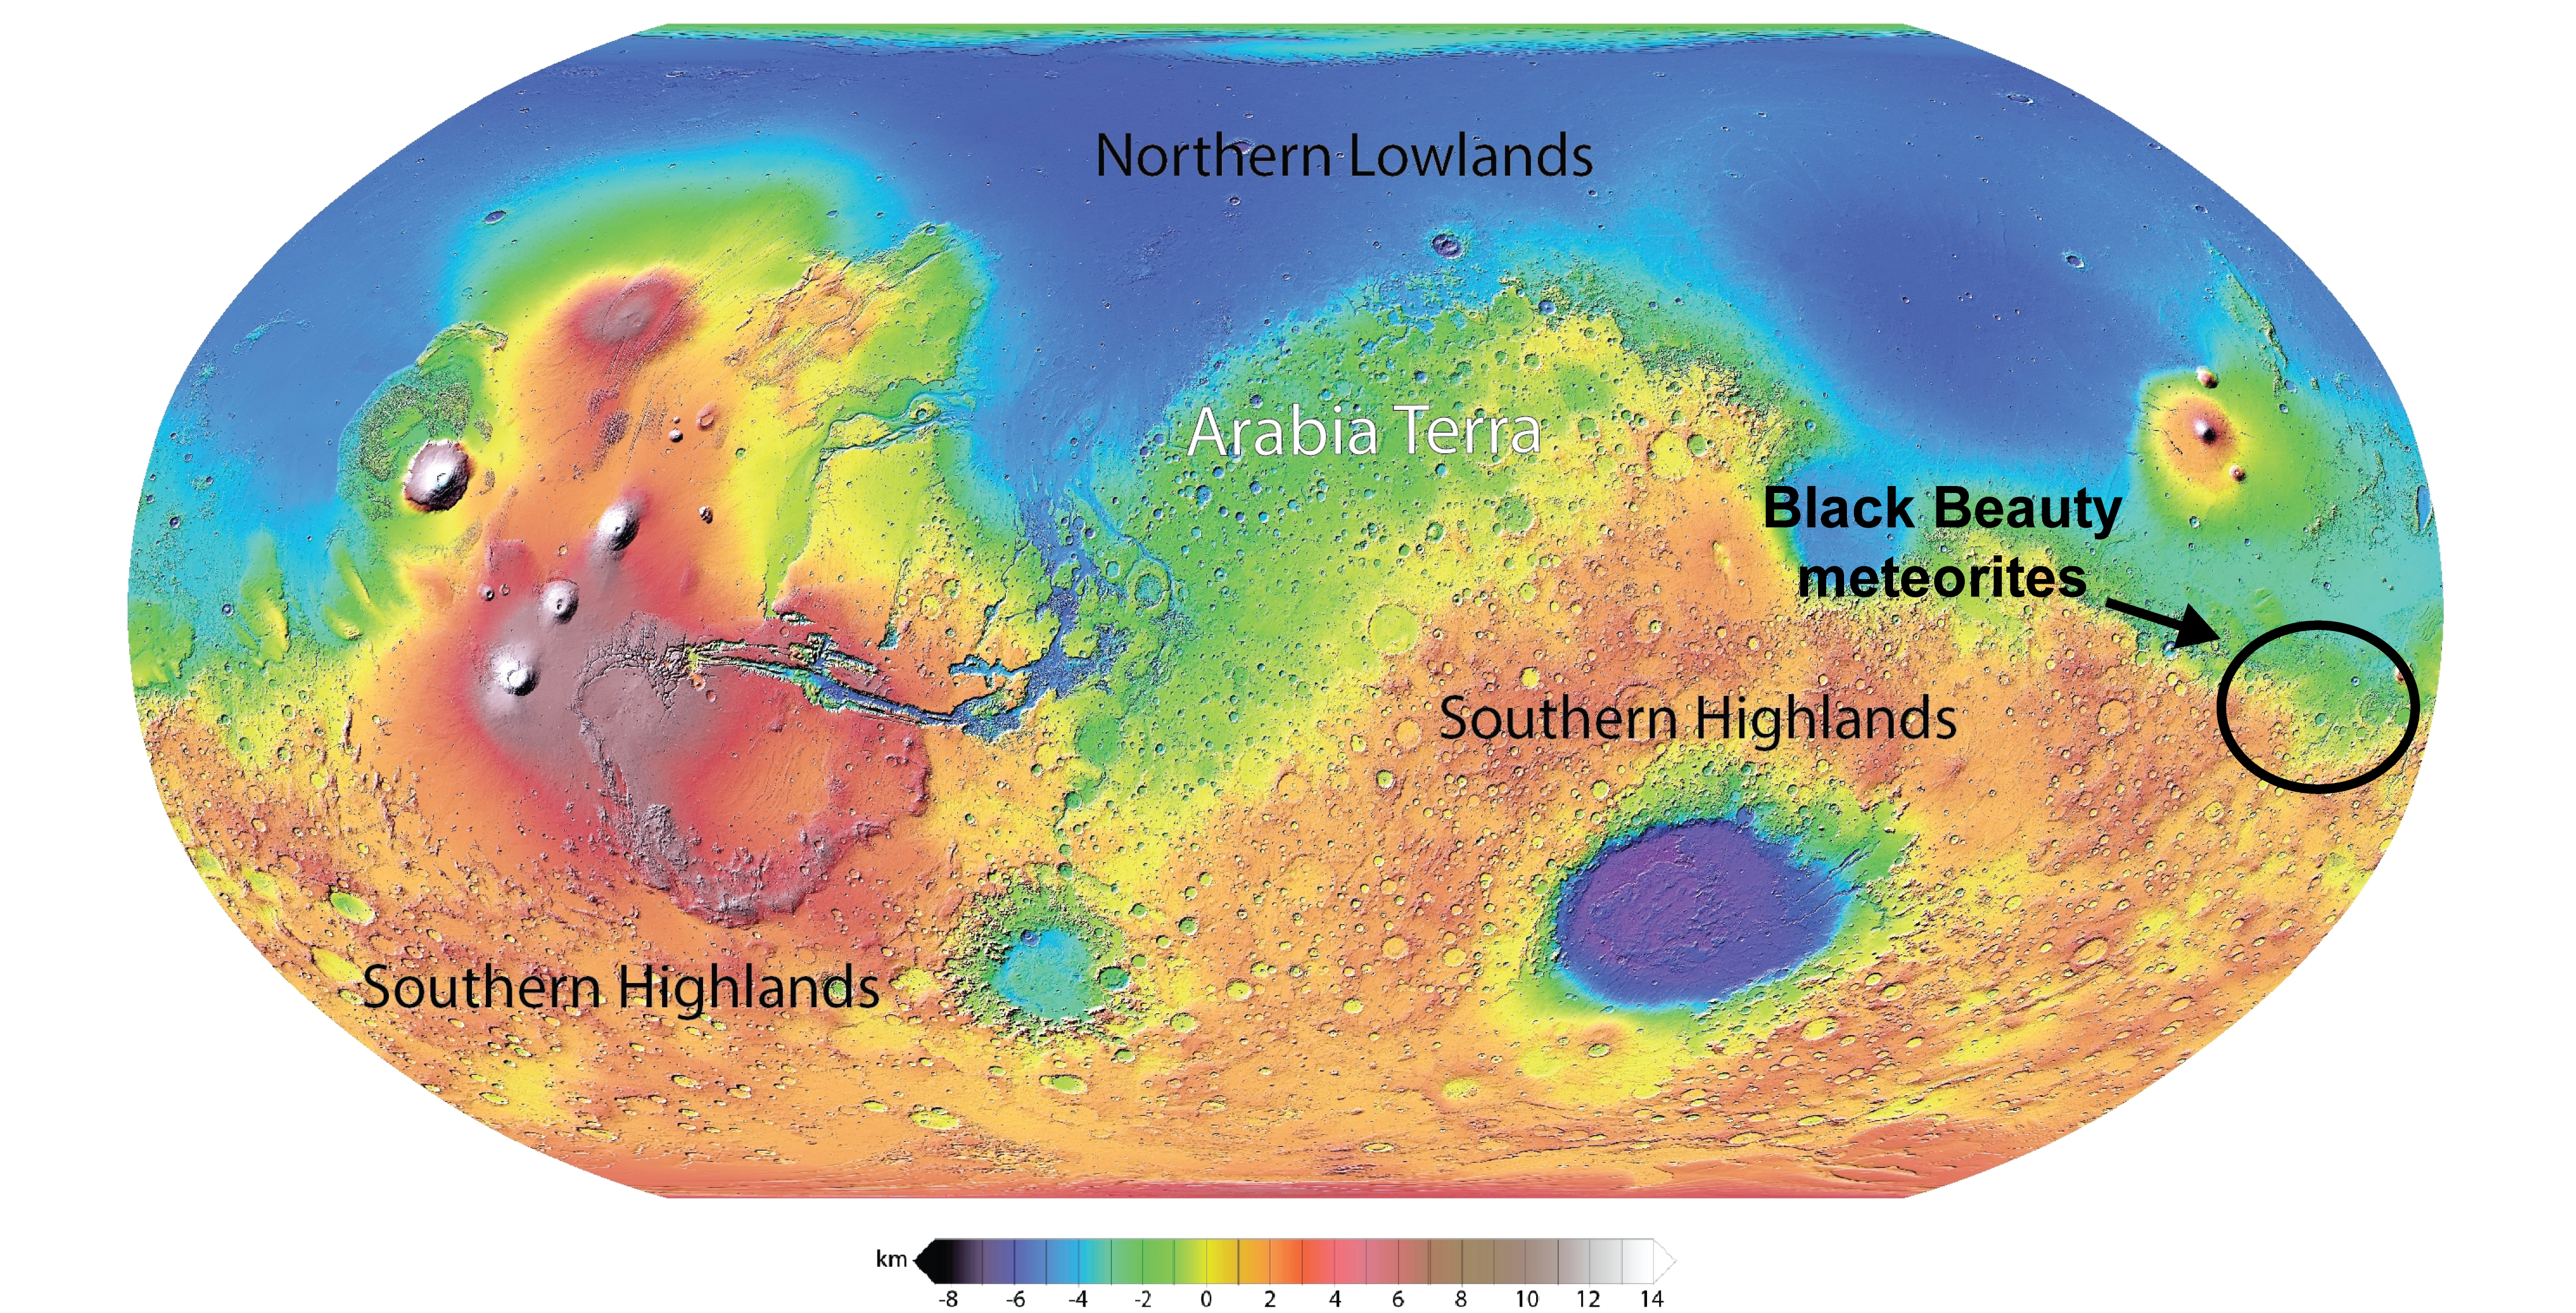 A map of Mars' surface points to an area where Black Beauty meteorites originate